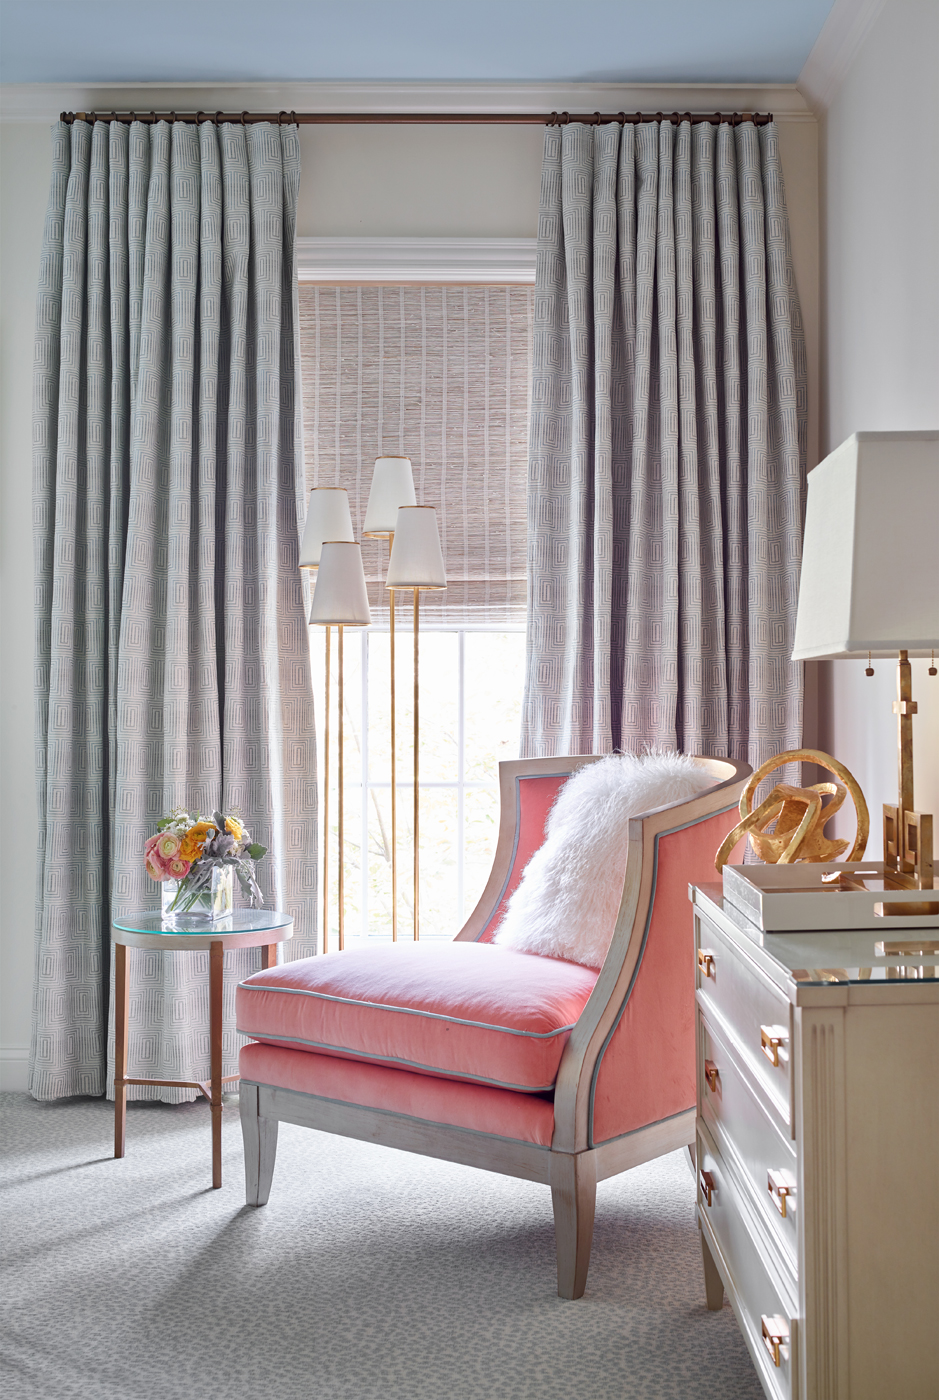 Bedroom seating with chest of drawers; upholstered slipper chair in coral fabric with blue trim | Savage Interior Design